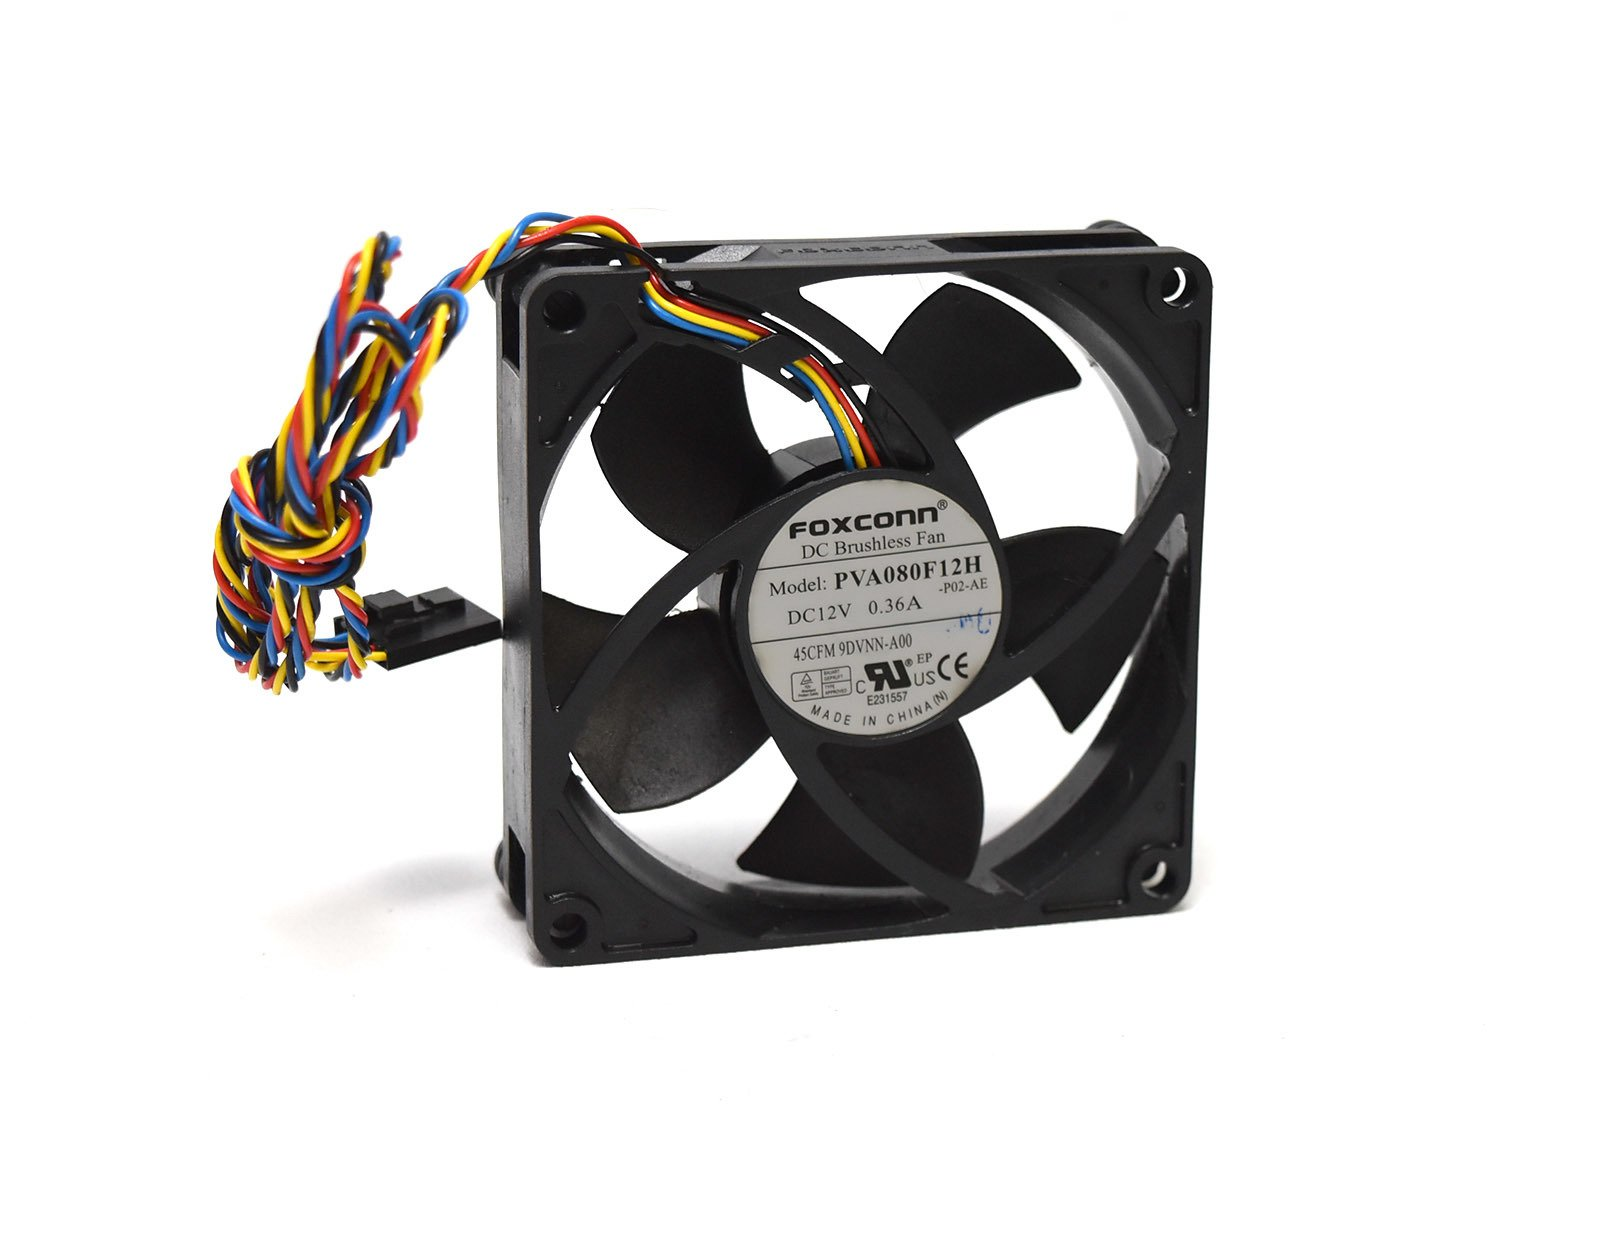 9DVNN Genuine OEM Rear Small Form Factor PC Computer Fan For Dell Optiplex 390 790 990 3010 7010 9010 4-Wire 5-Pin Power Connector Foxconn AVC Sunon Rev:A00 by Aquamoon Trading (Image #1)